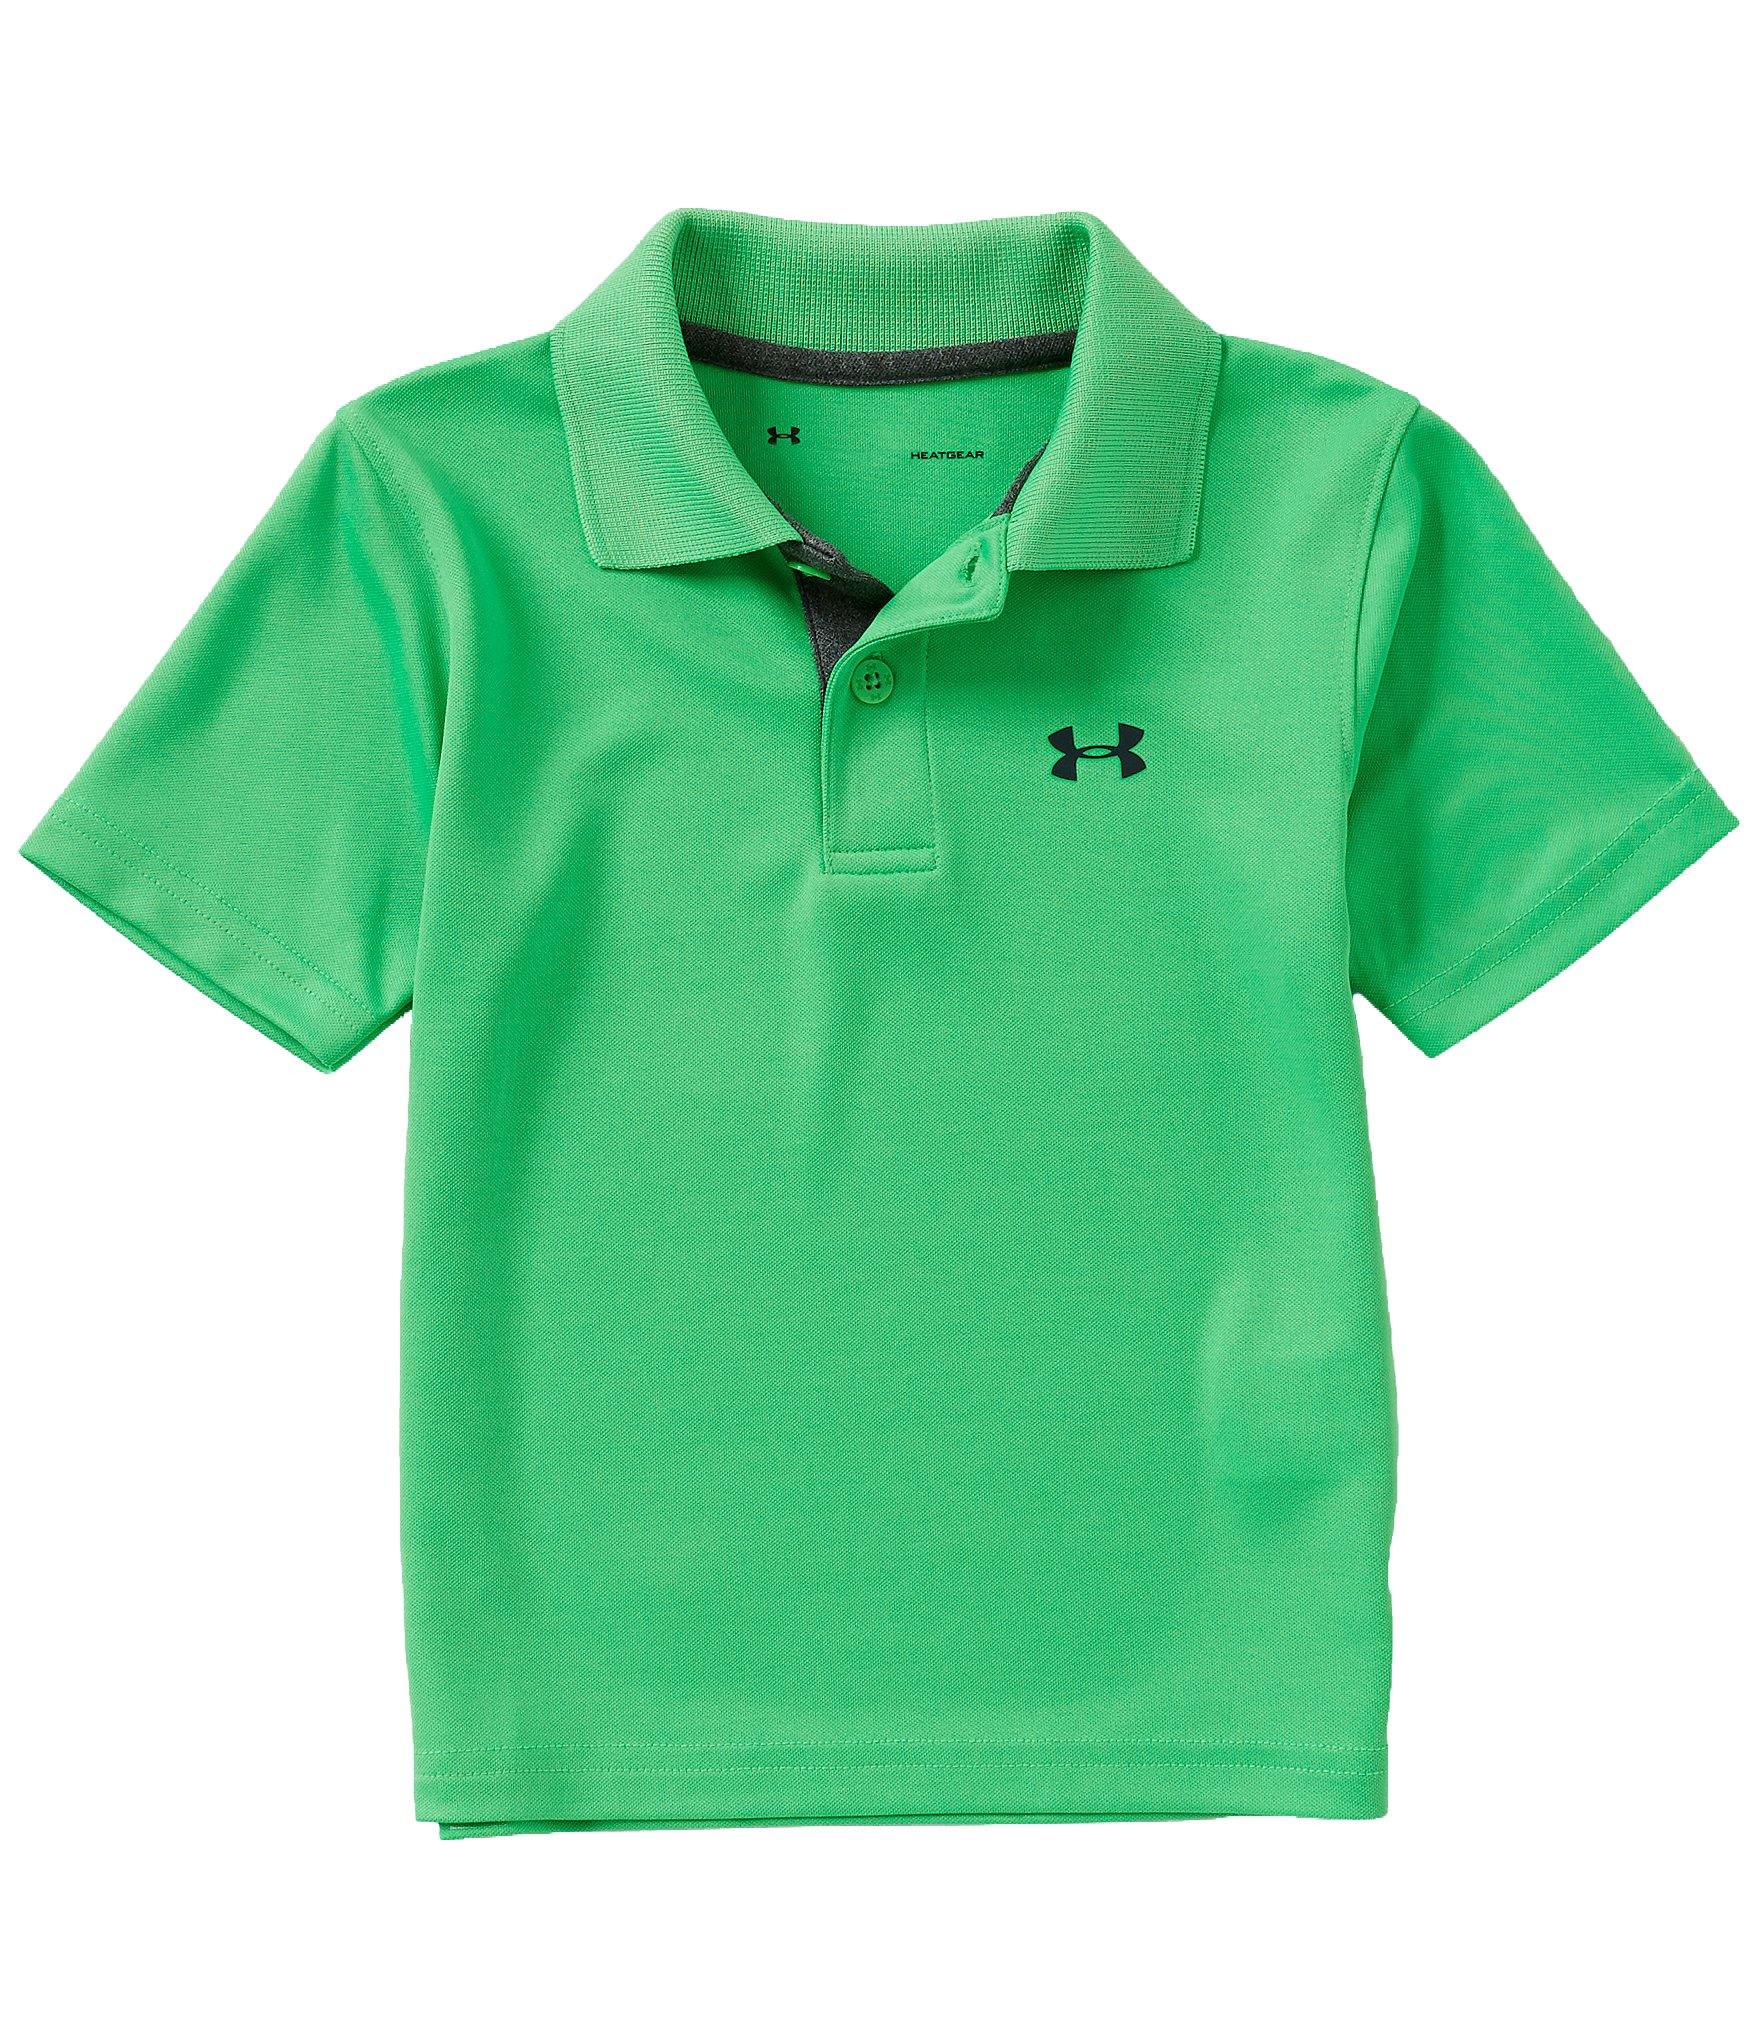 Under Armour Boys' Ua Logo Short Sleeve Polo (6, Lime Twist (27D54682-33) / Black/Lime Twist) by Under Armour